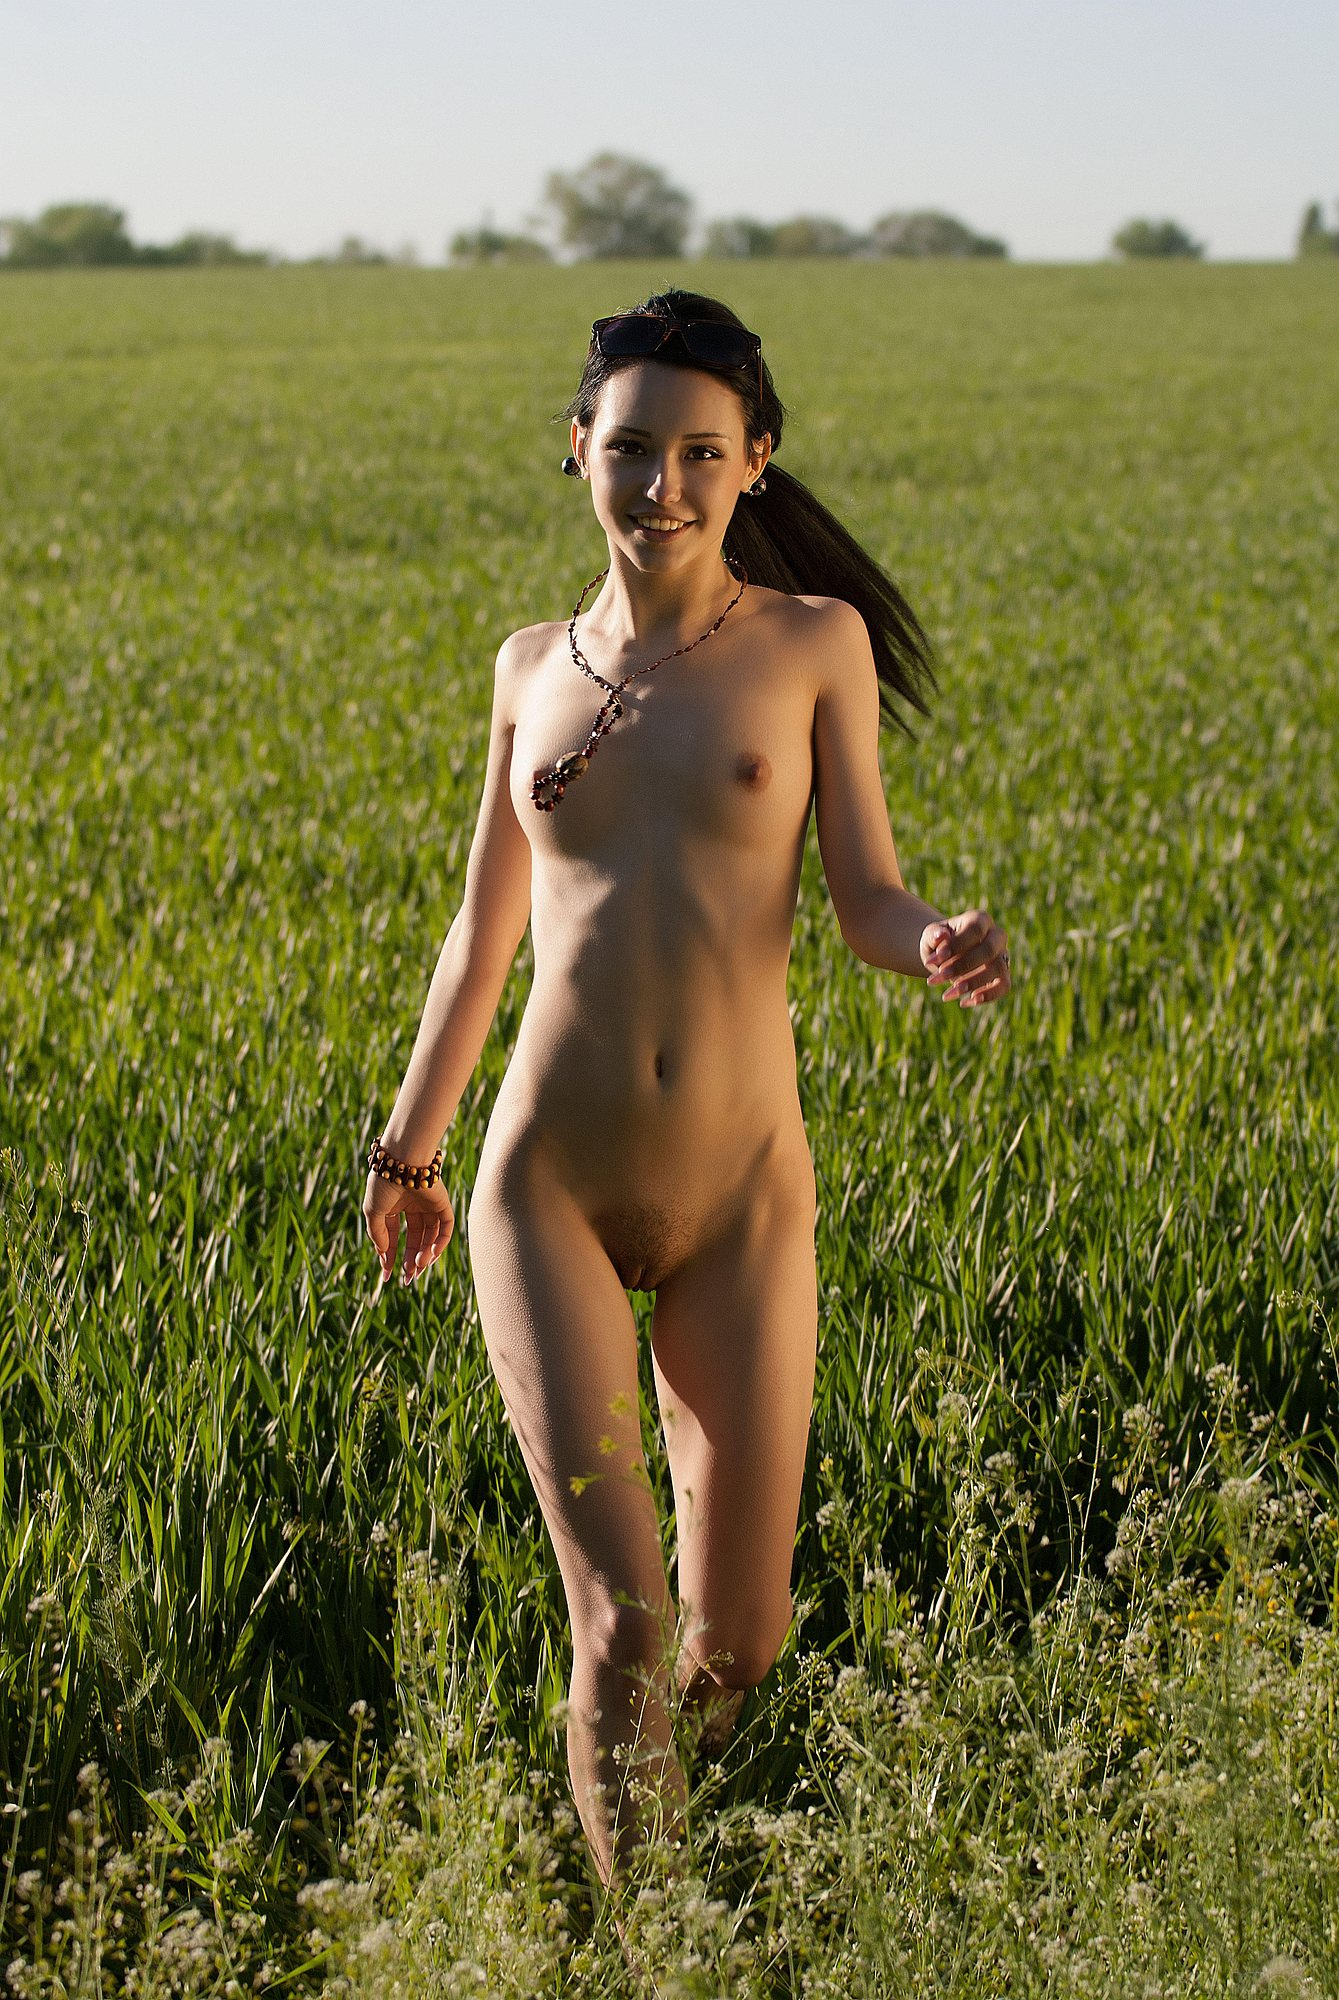 japanise woman jogging naked video